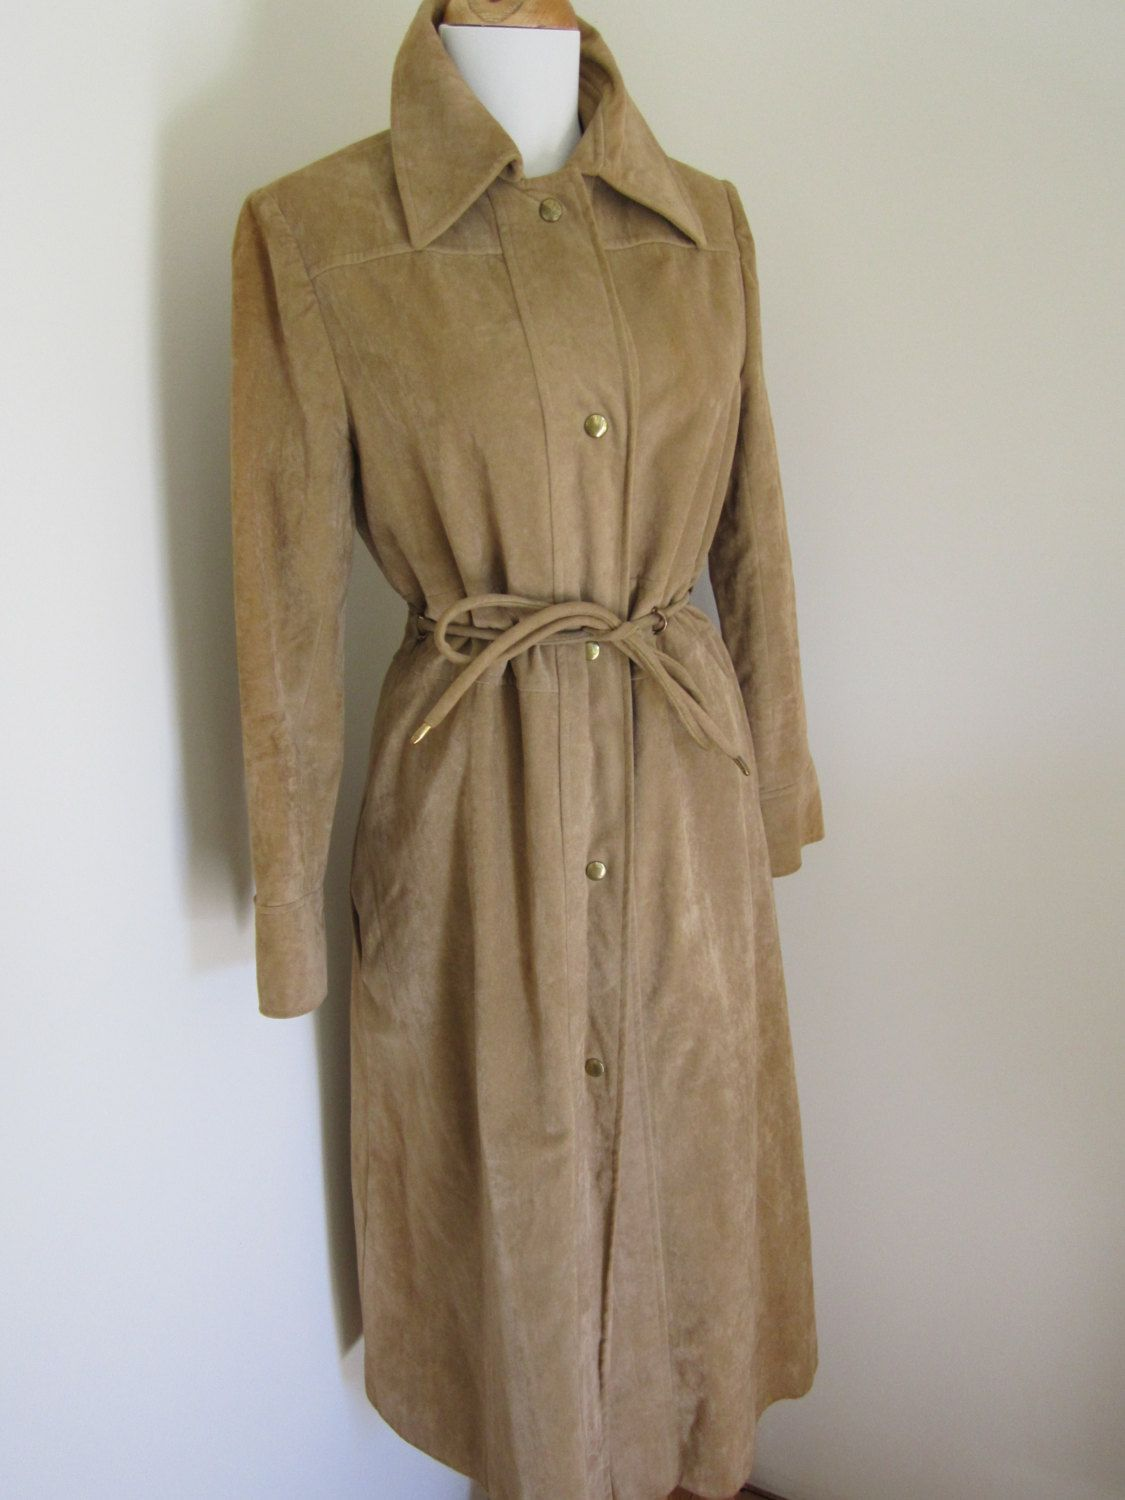 1970s Tan Velveteen Snap Front Maxi Coat XSmall by petgirlvintage on Etsy https://www.etsy.com/listing/163787458/1970s-tan-velveteen-snap-front-maxi-coat